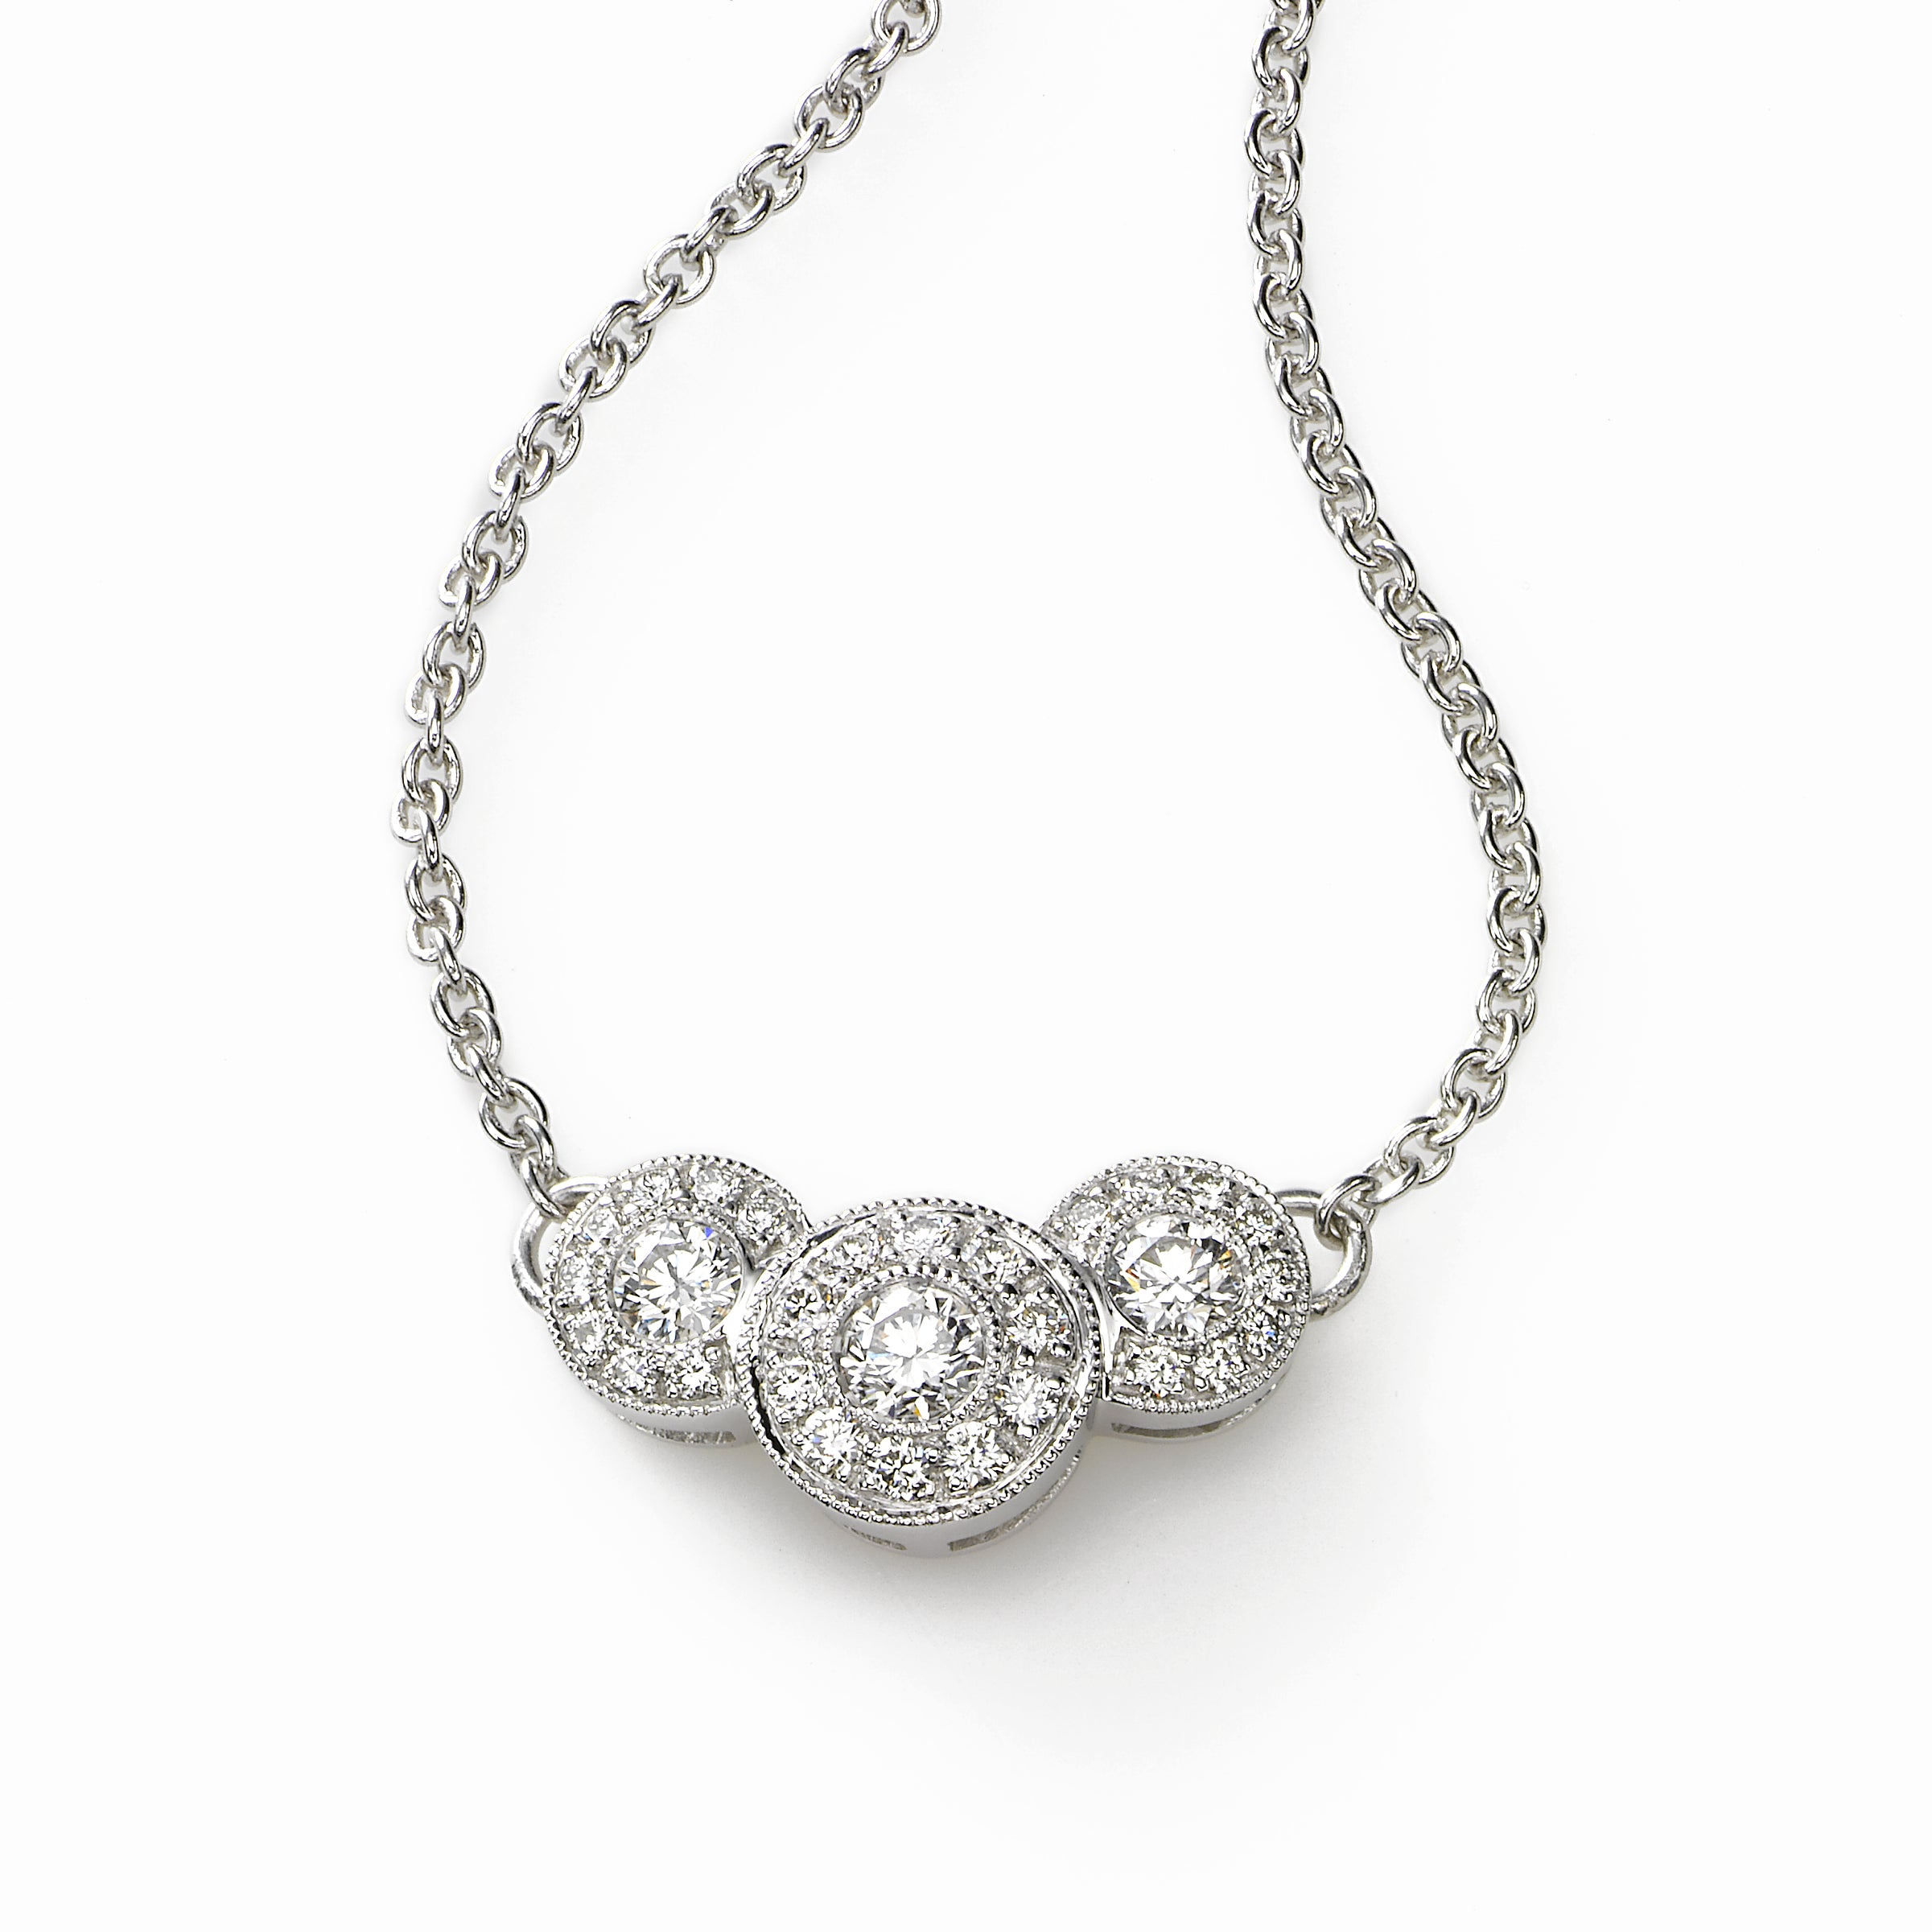 Triple Graduated Diamond Circle Necklace, 16 inch, 14K White Gold